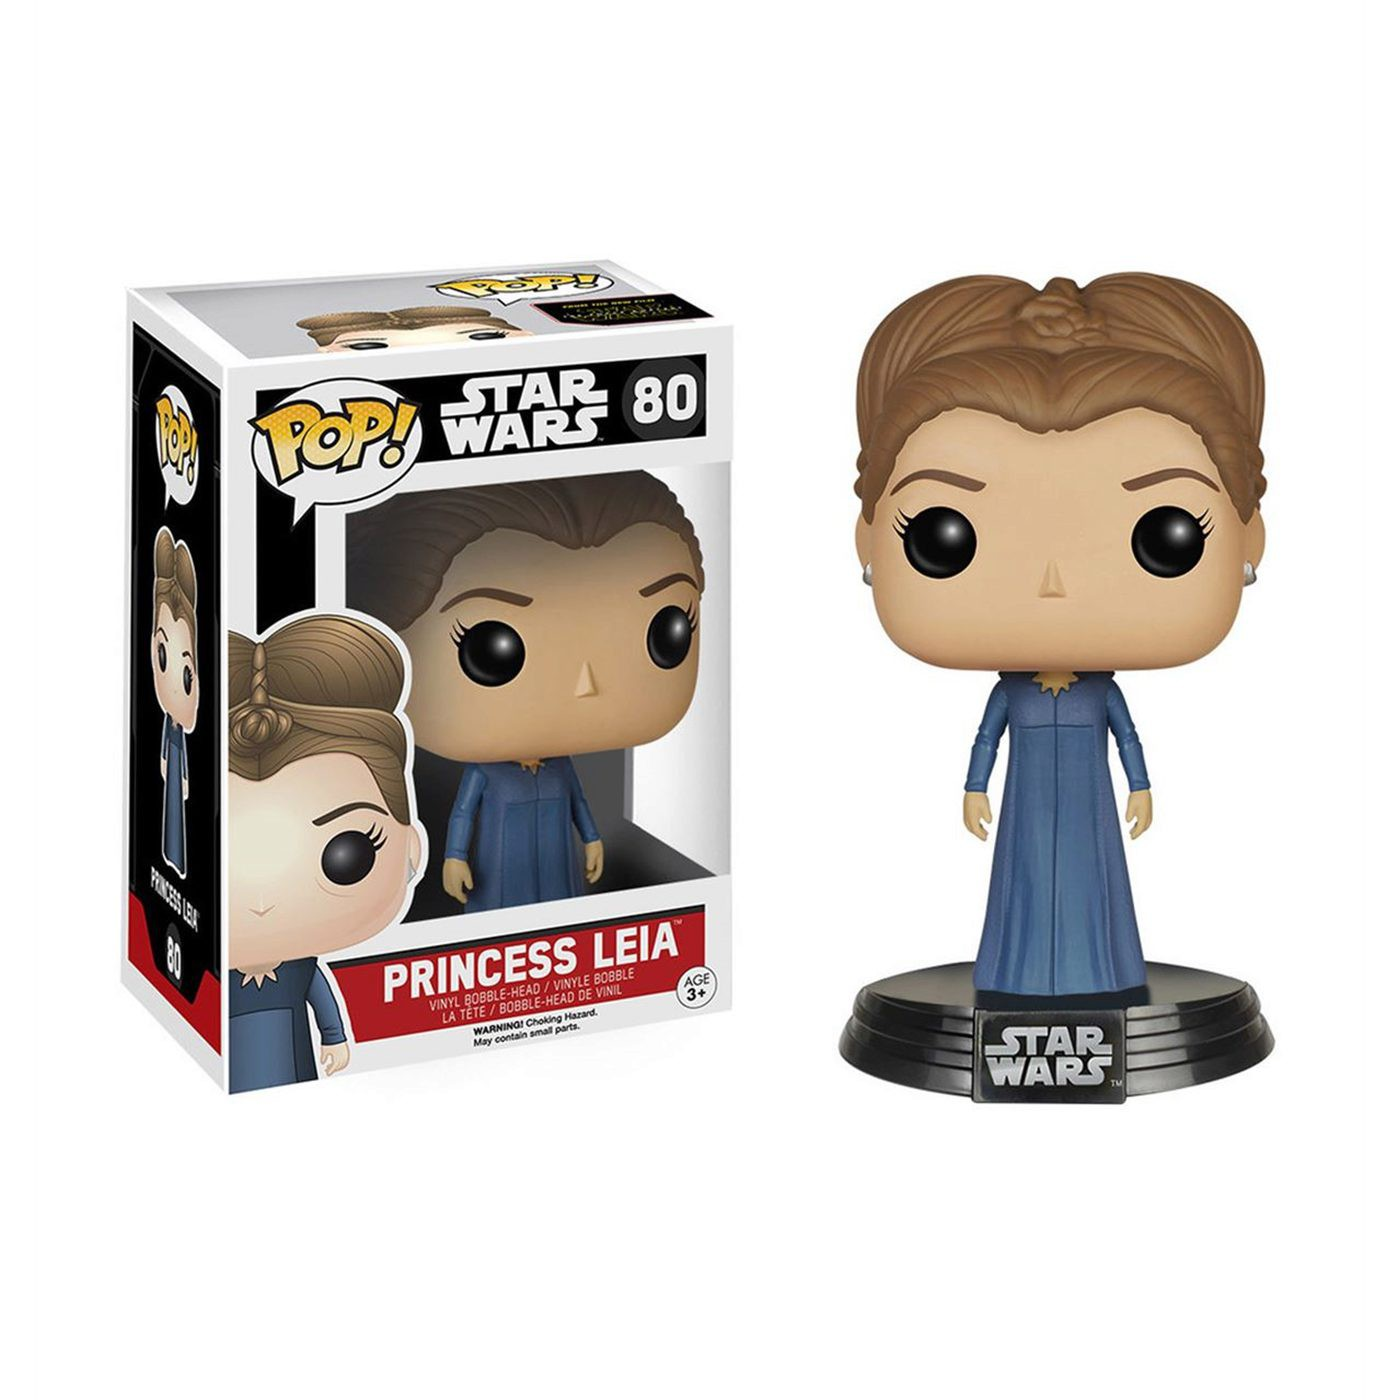 Star Wars The Force Awakens Leia Pop Bobblehead